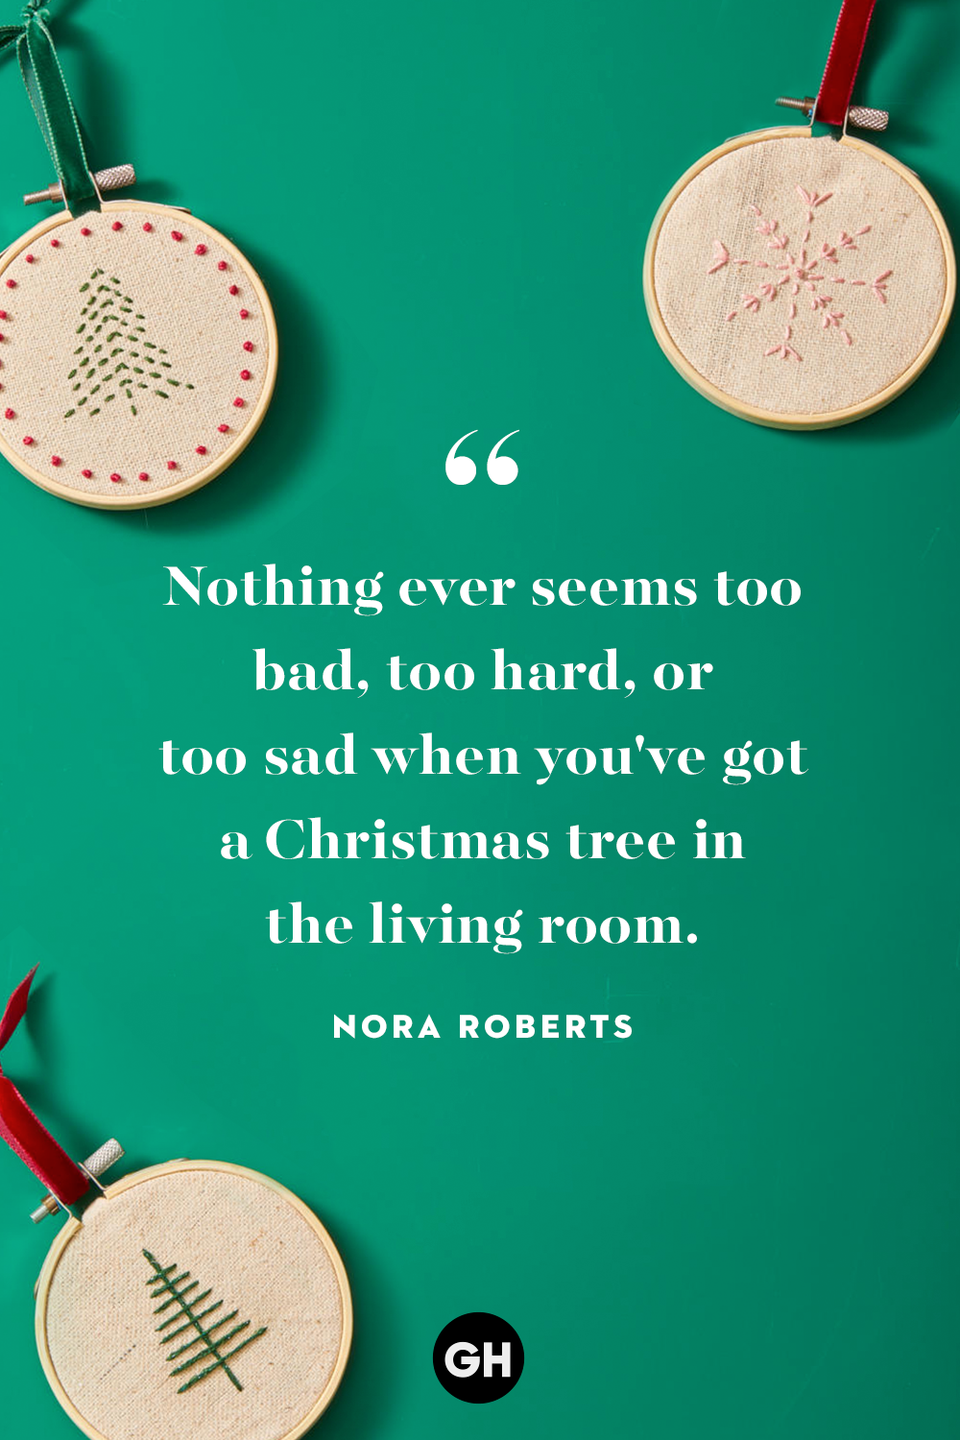 <p>Nothing ever seems too bad, too hard or too sad when you've got a Christmas tree in the living room.</p>